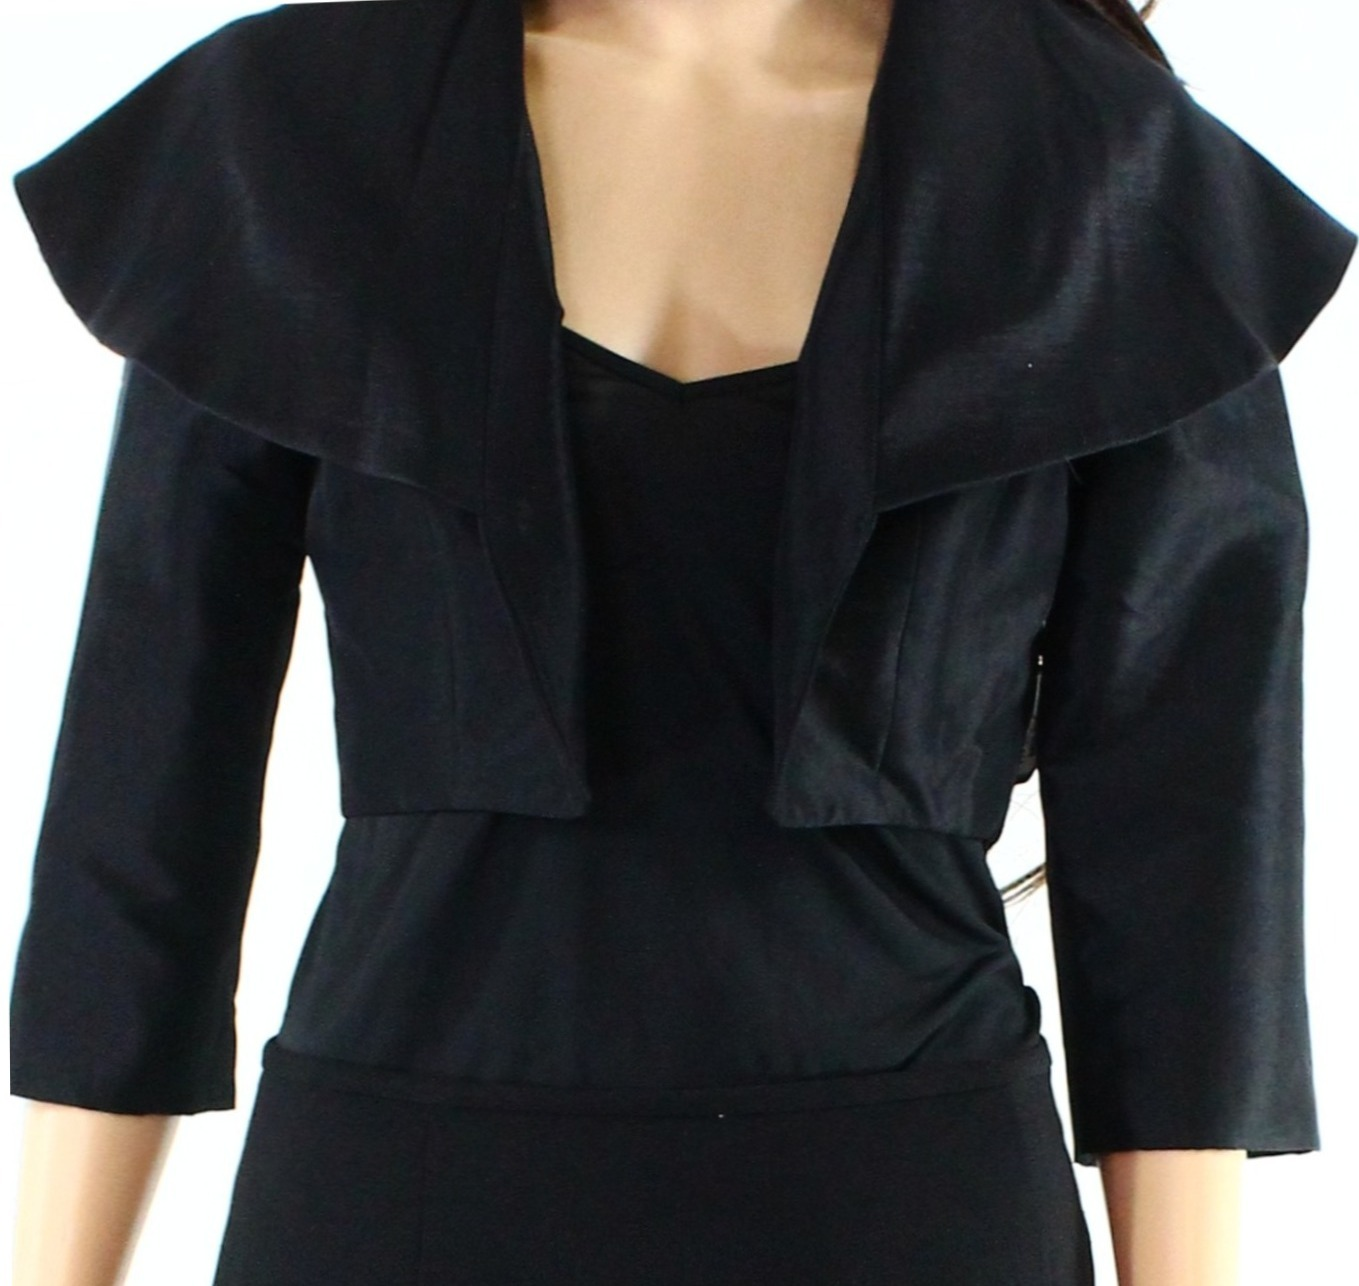 B Michael America NEW Black Womens 12 Cropped 3/4 Sleeve Bolero Jacket